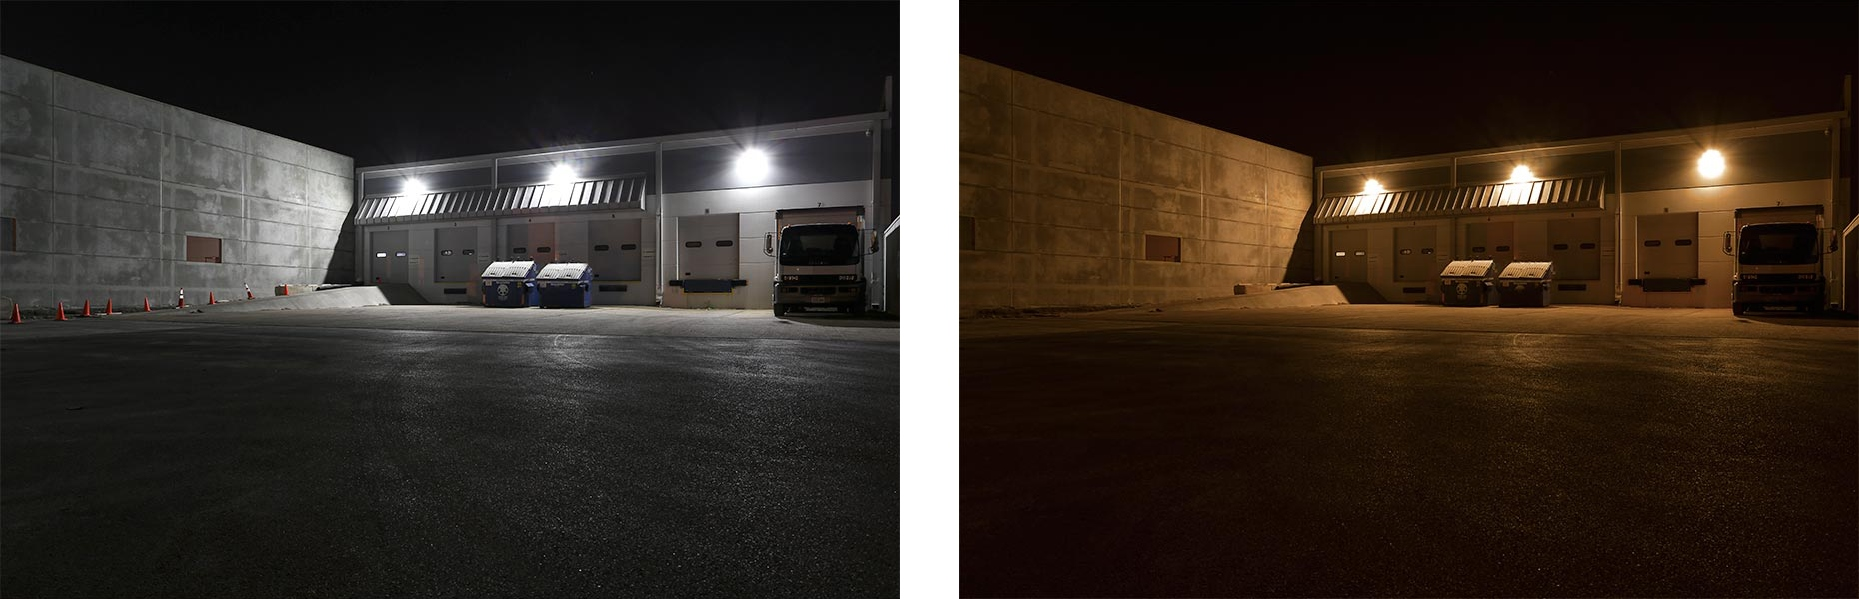 Making the switch to led parking lot lights superbrightleds led parking lot lights versus hid arubaitofo Image collections